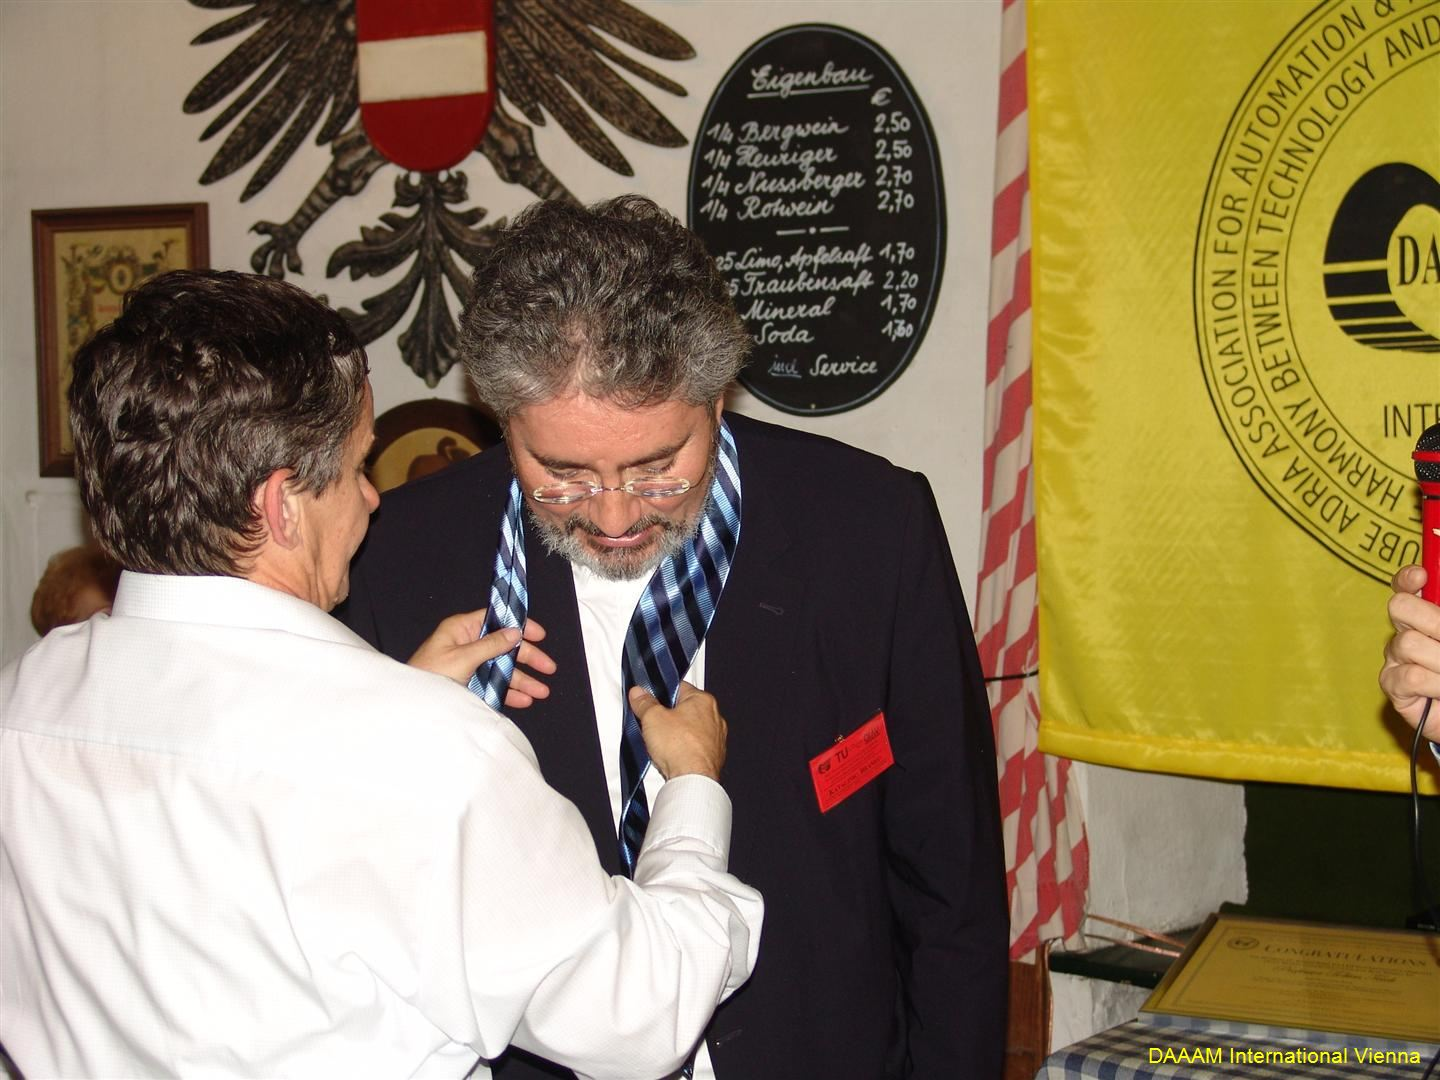 daaam_2006_vienna_dinner_recognitions_lectures_069